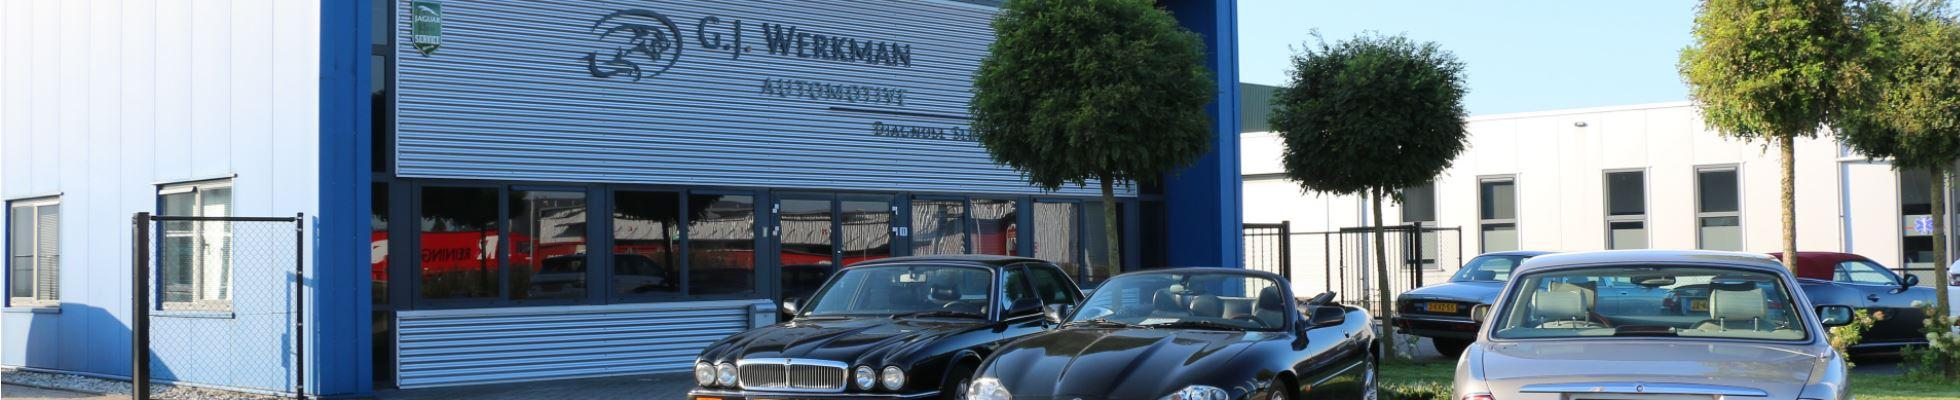 Werkman Automotive Occassions